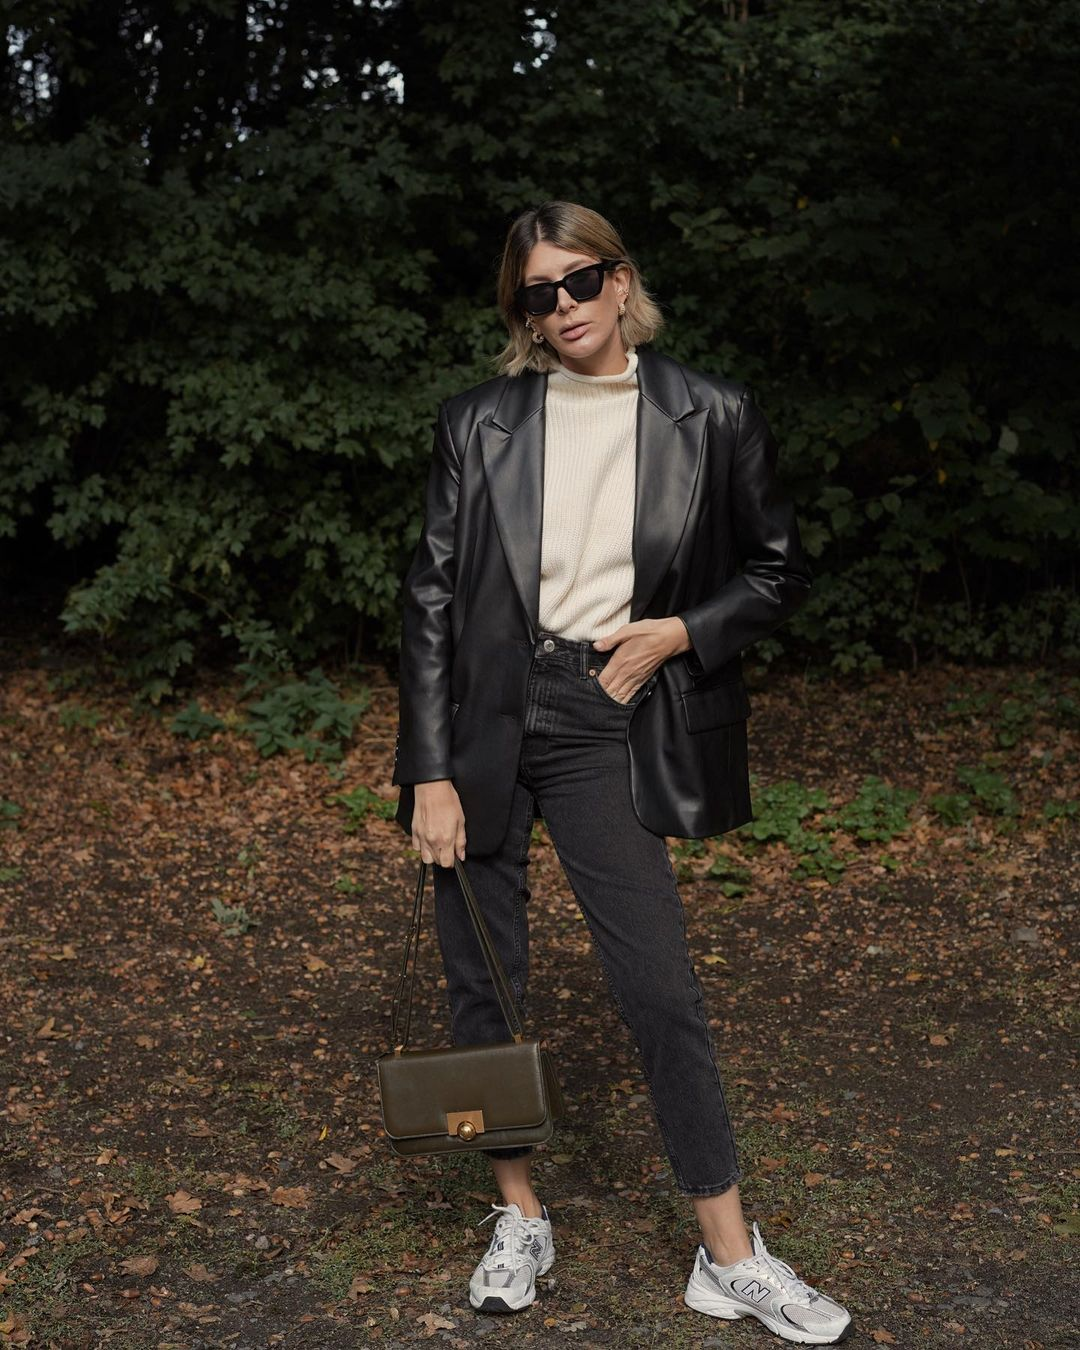 If You Buy One Piece for Fall, Make it a Pair of Black Jeans